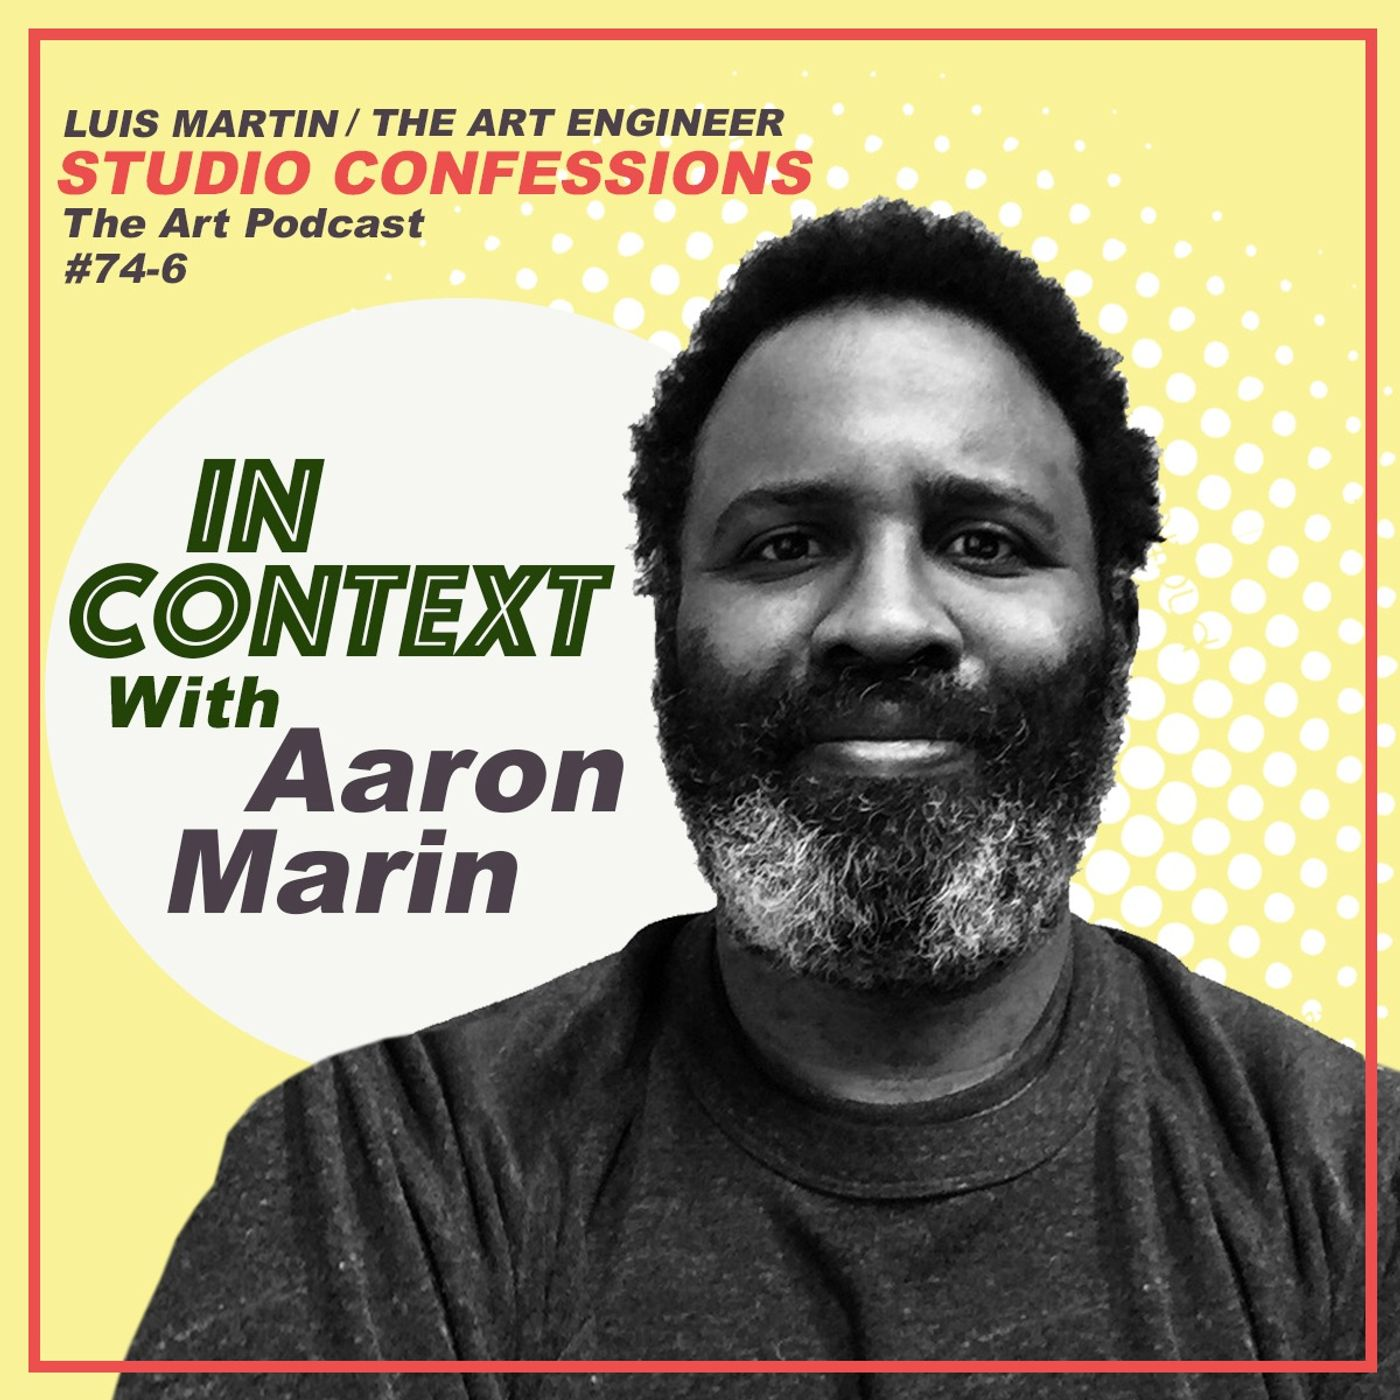 Aaron Marin: In Context